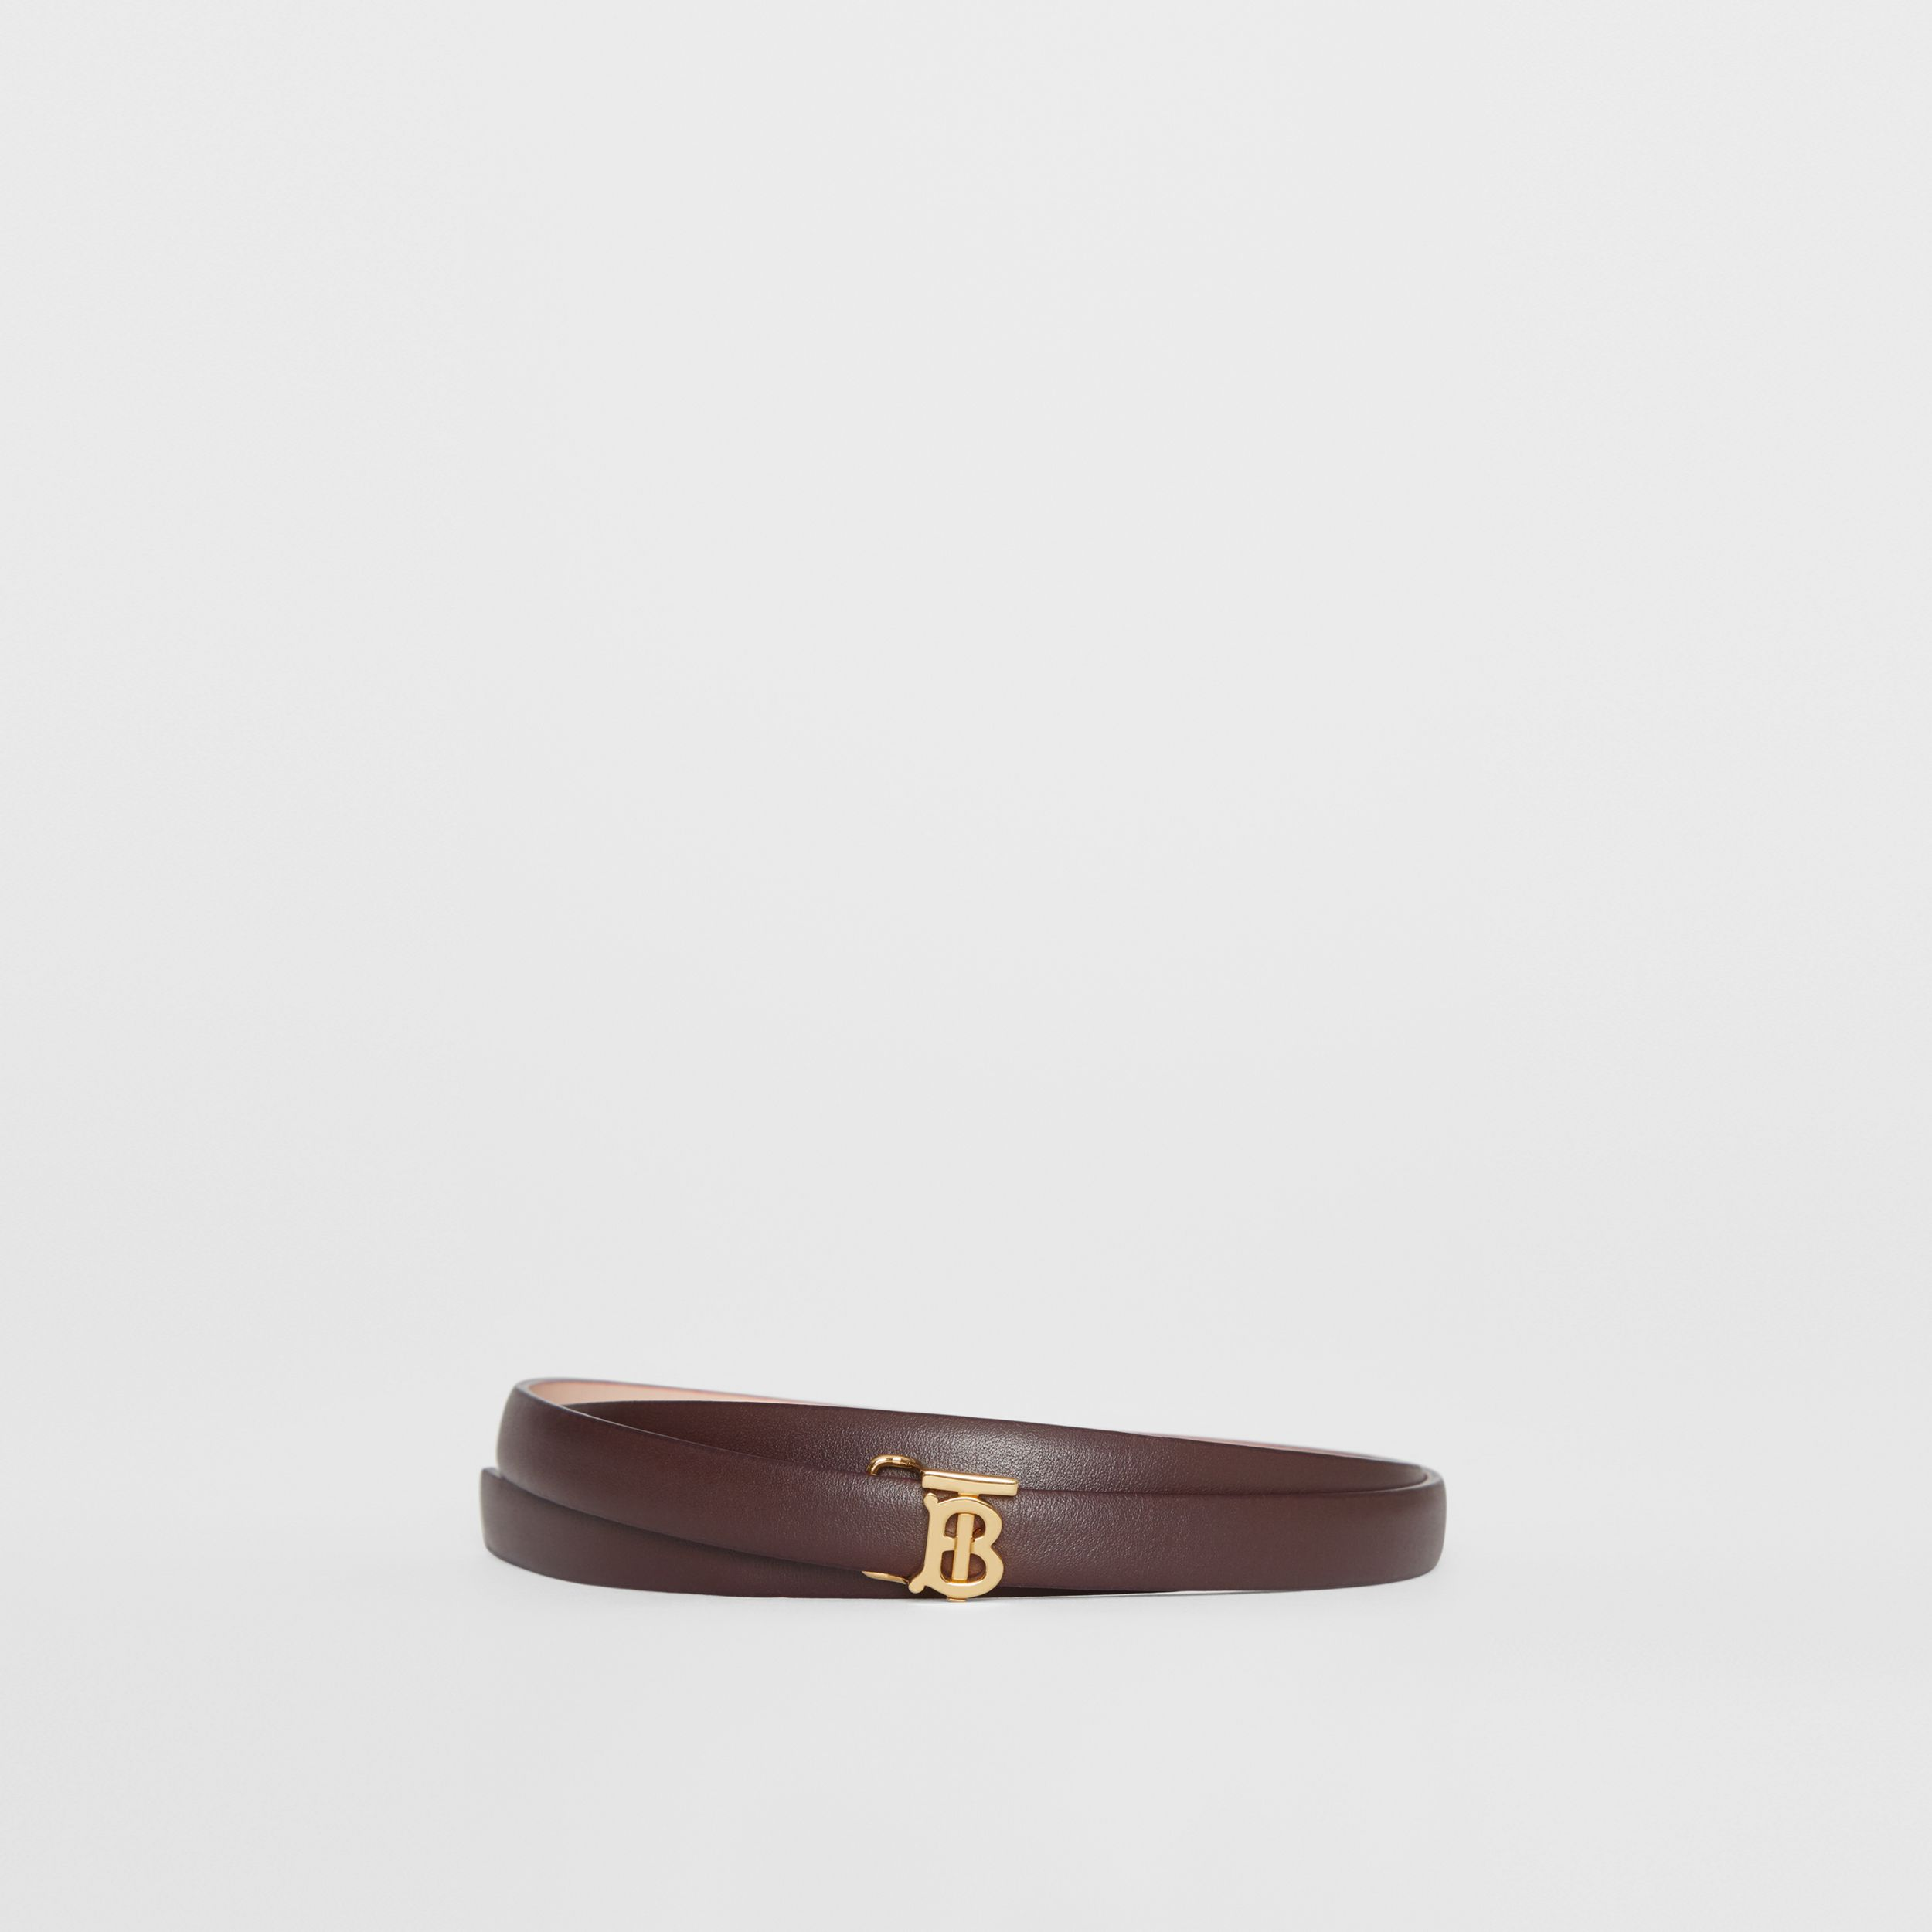 Reversible Monogram Motif Leather Wrap Belt in Oxblood/rose Beige - Women | Burberry United Kingdom - 1